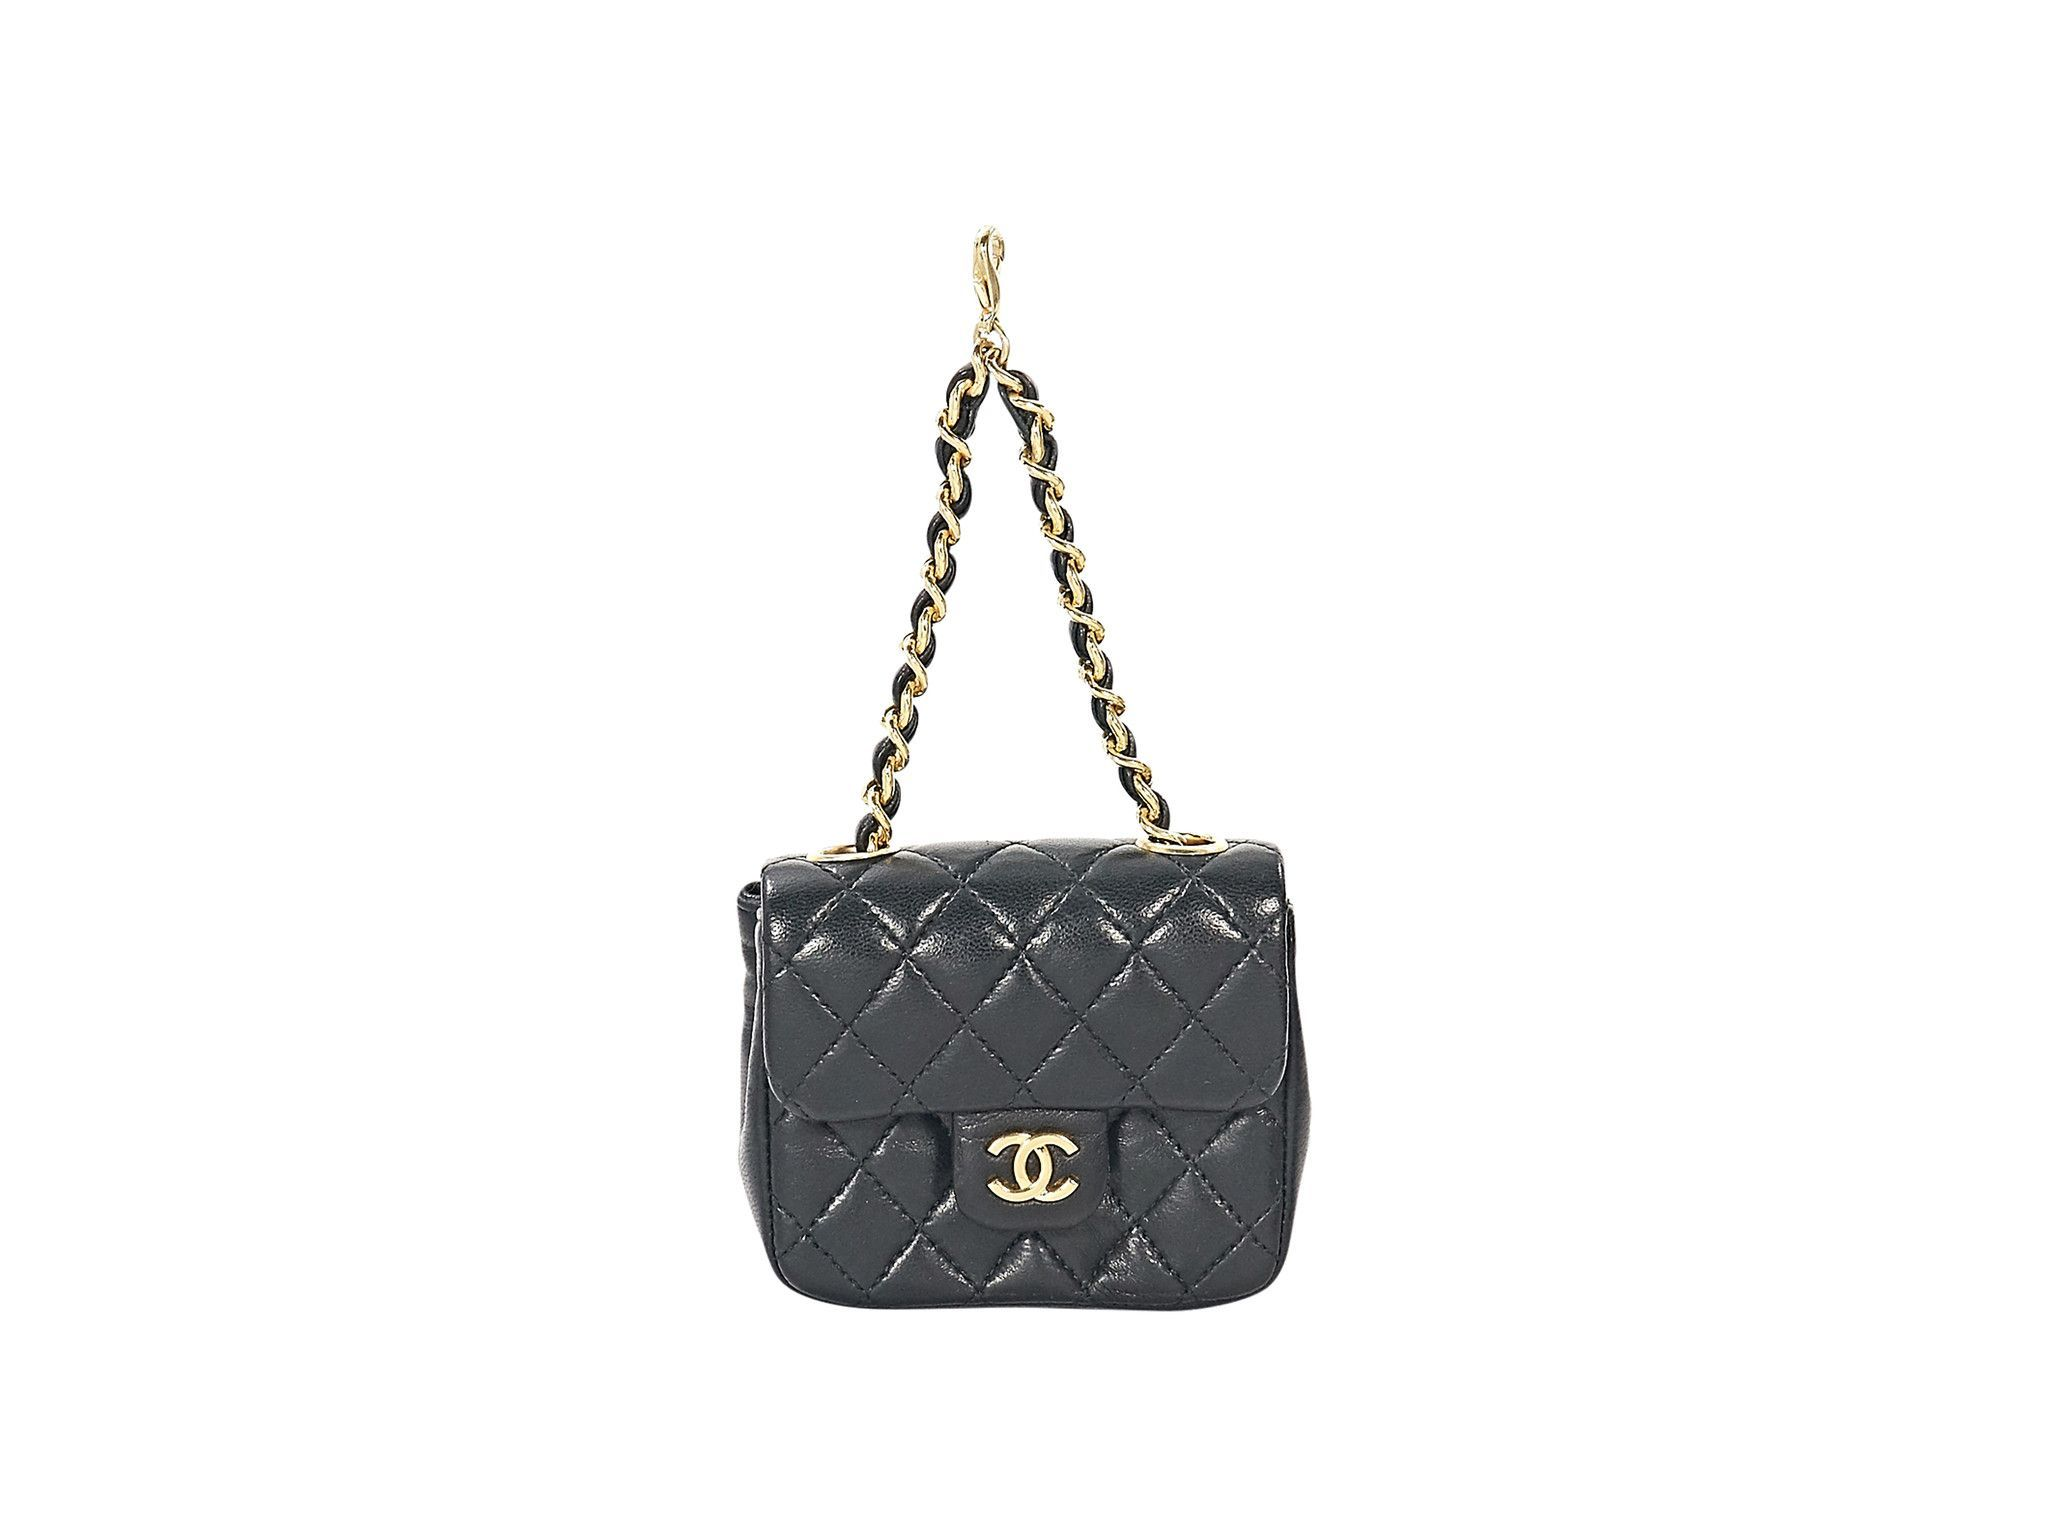 24b8dd9fba60 Black Chanel Quilted Leather Micro Mini Bag